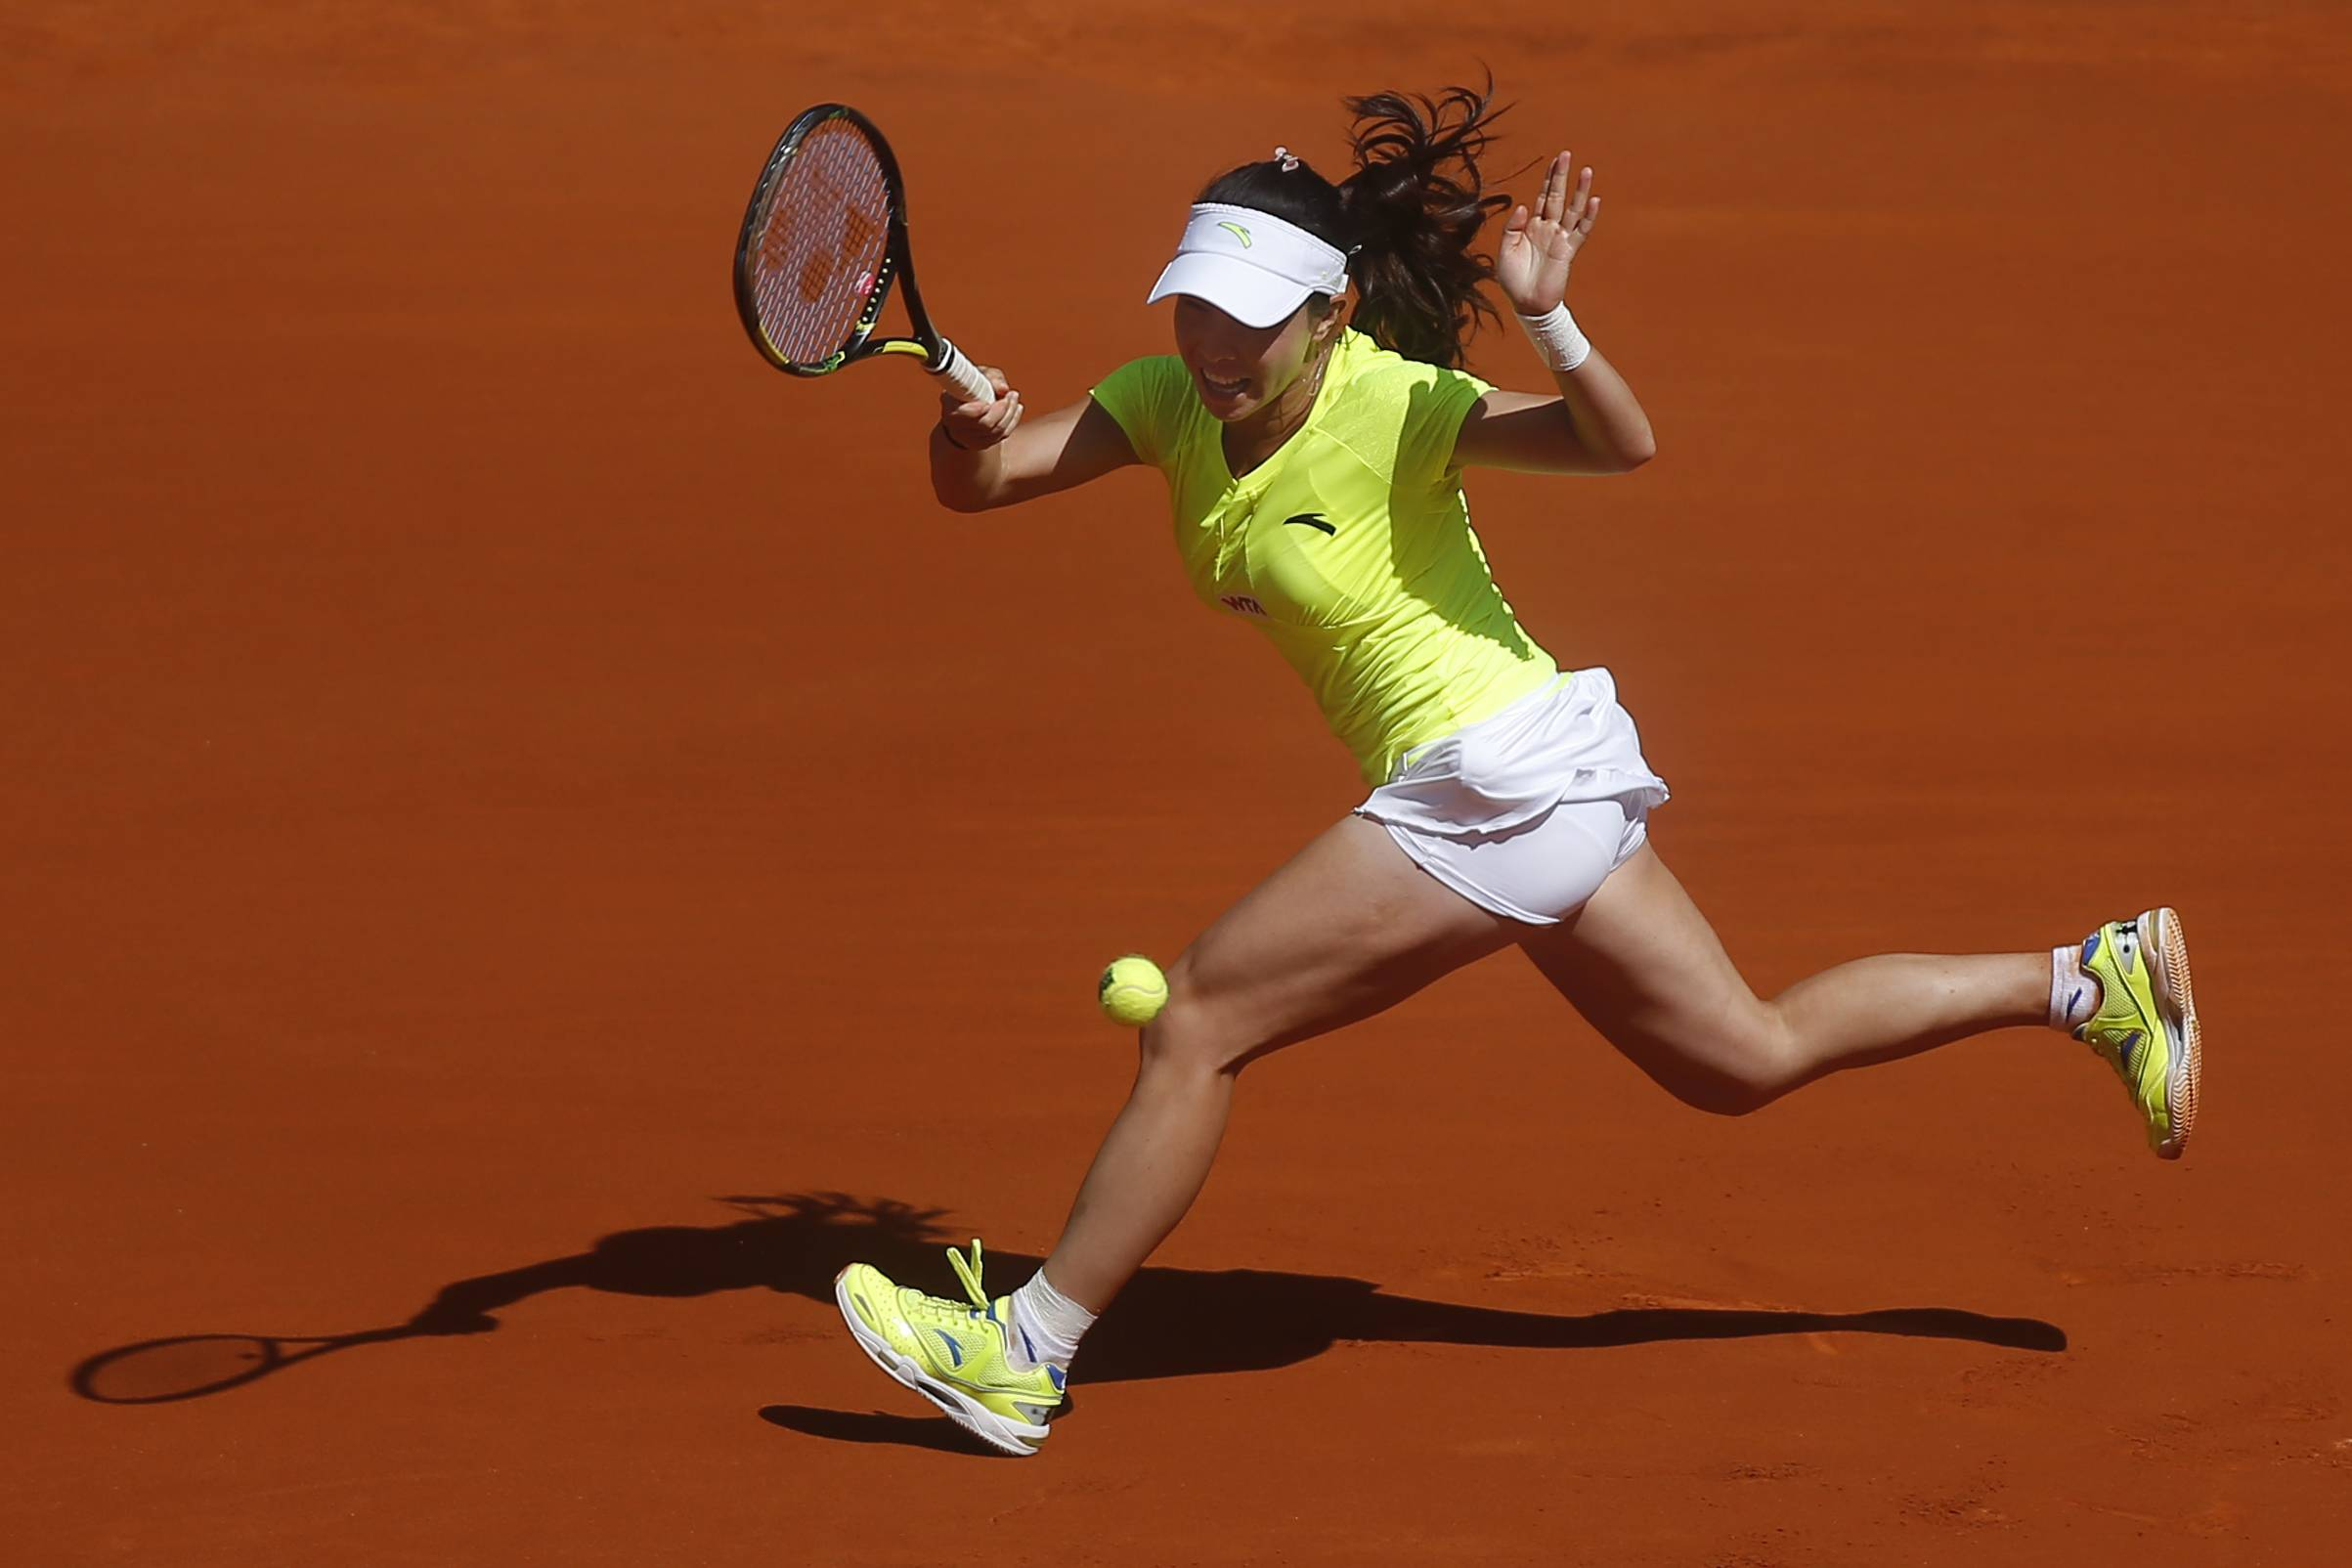 Jie Zheng from China serves during a Madrid Open tennis tournament match against Na Li from China, in Madrid, Spain, Tuesday May 6, 2014.